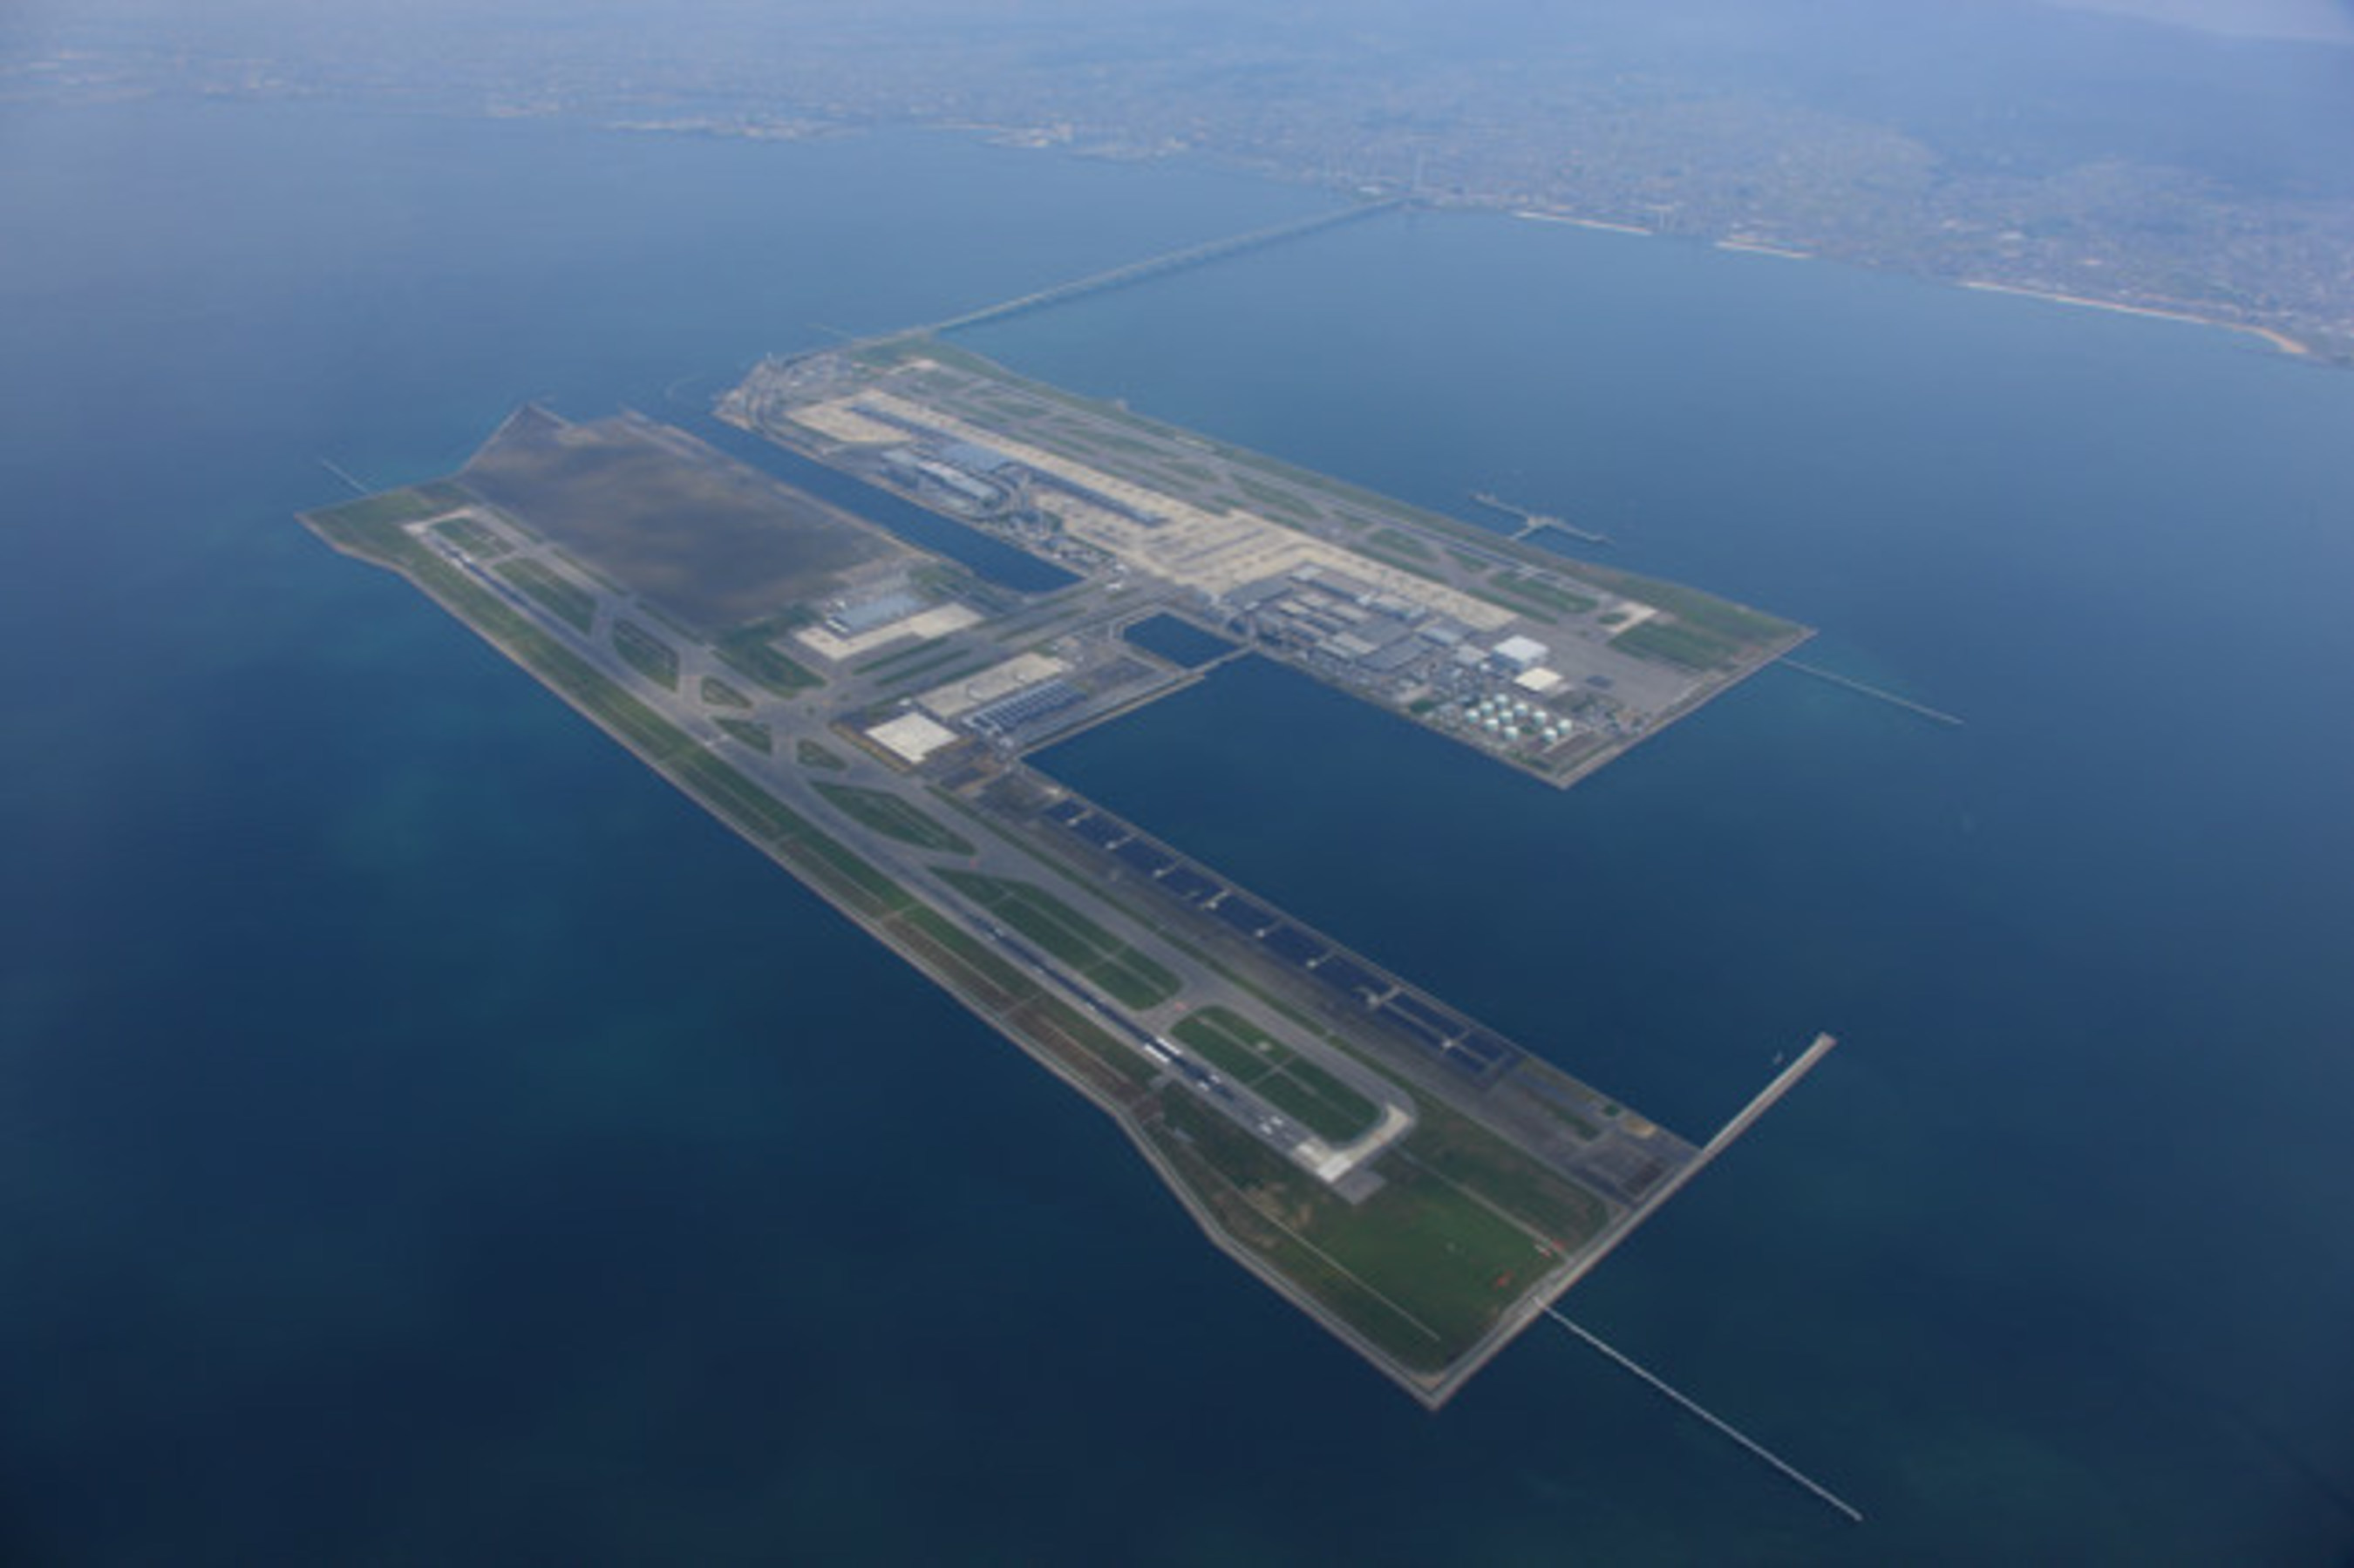 Japan's Kansai International Airport Selects Ruckus Smart Wi-Fi